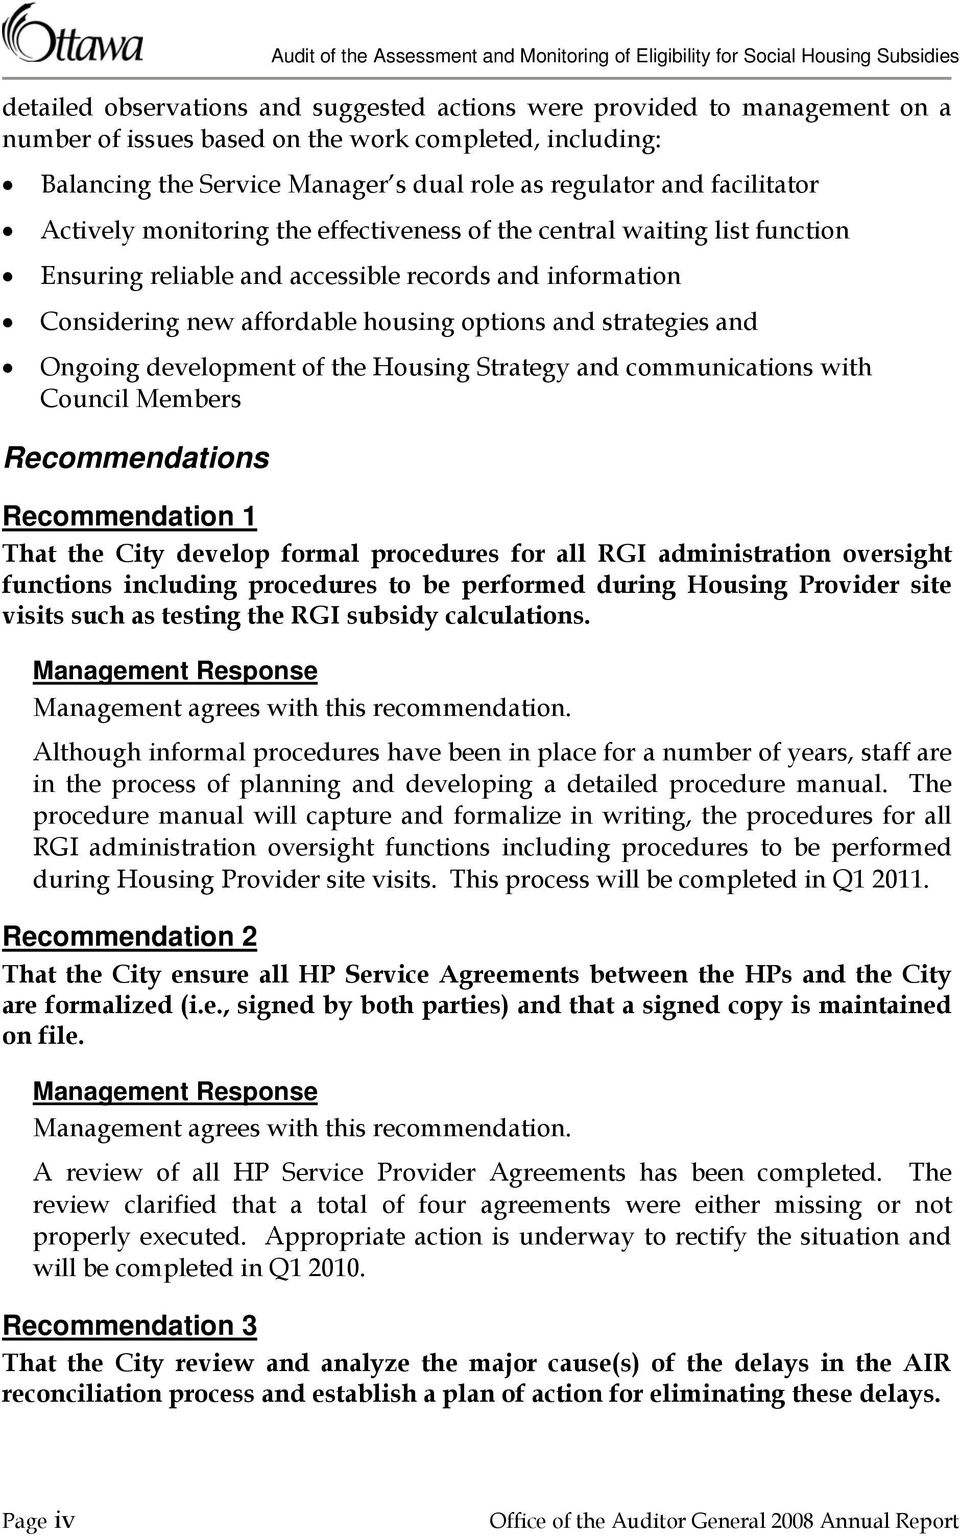 strategies and Ongoing development of the Housing Strategy and communications with Council Members Recommendations Recommendation 1 That the City develop formal procedures for all RGI administration